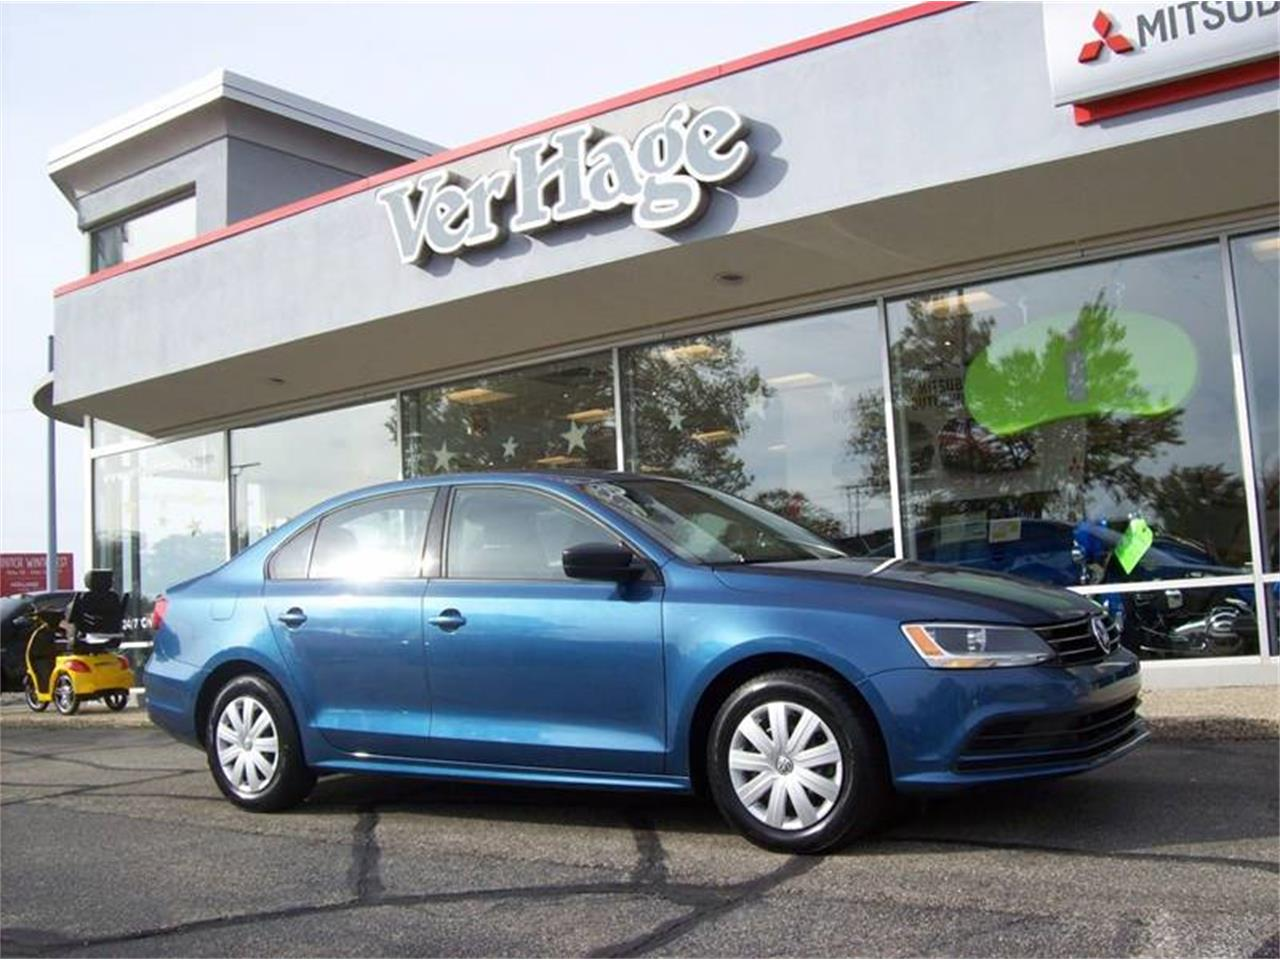 Large Picture of '15 Volkswagen Jetta located in Holland Michigan Offered by Verhage Mitsubishi - M6XO